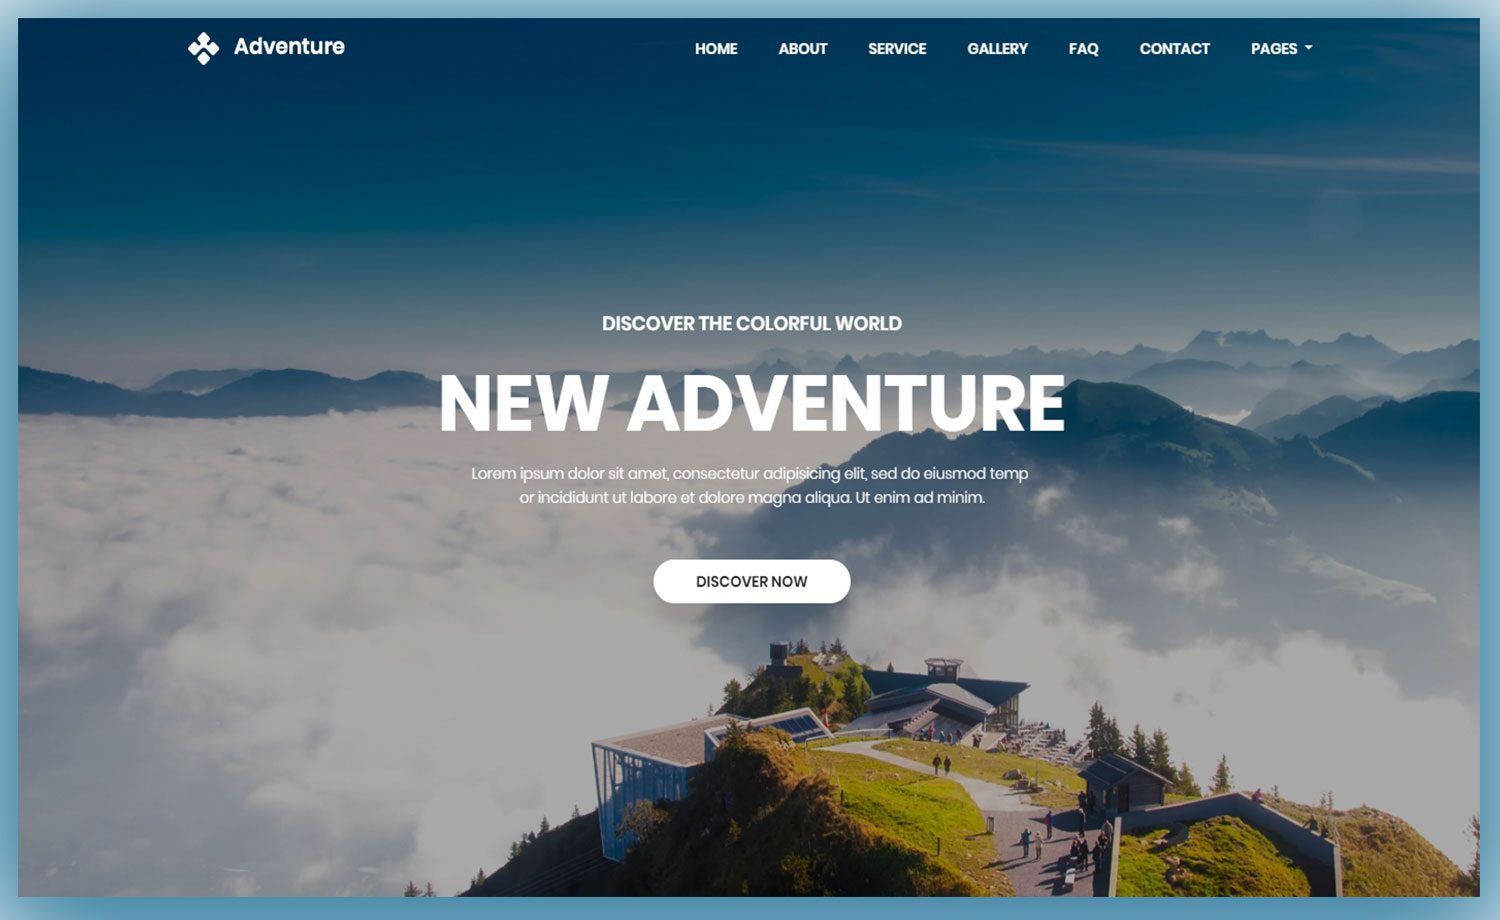 002 Archaicawful Website Template Html Free Download High Def  Indian School Software Company SpiceFull